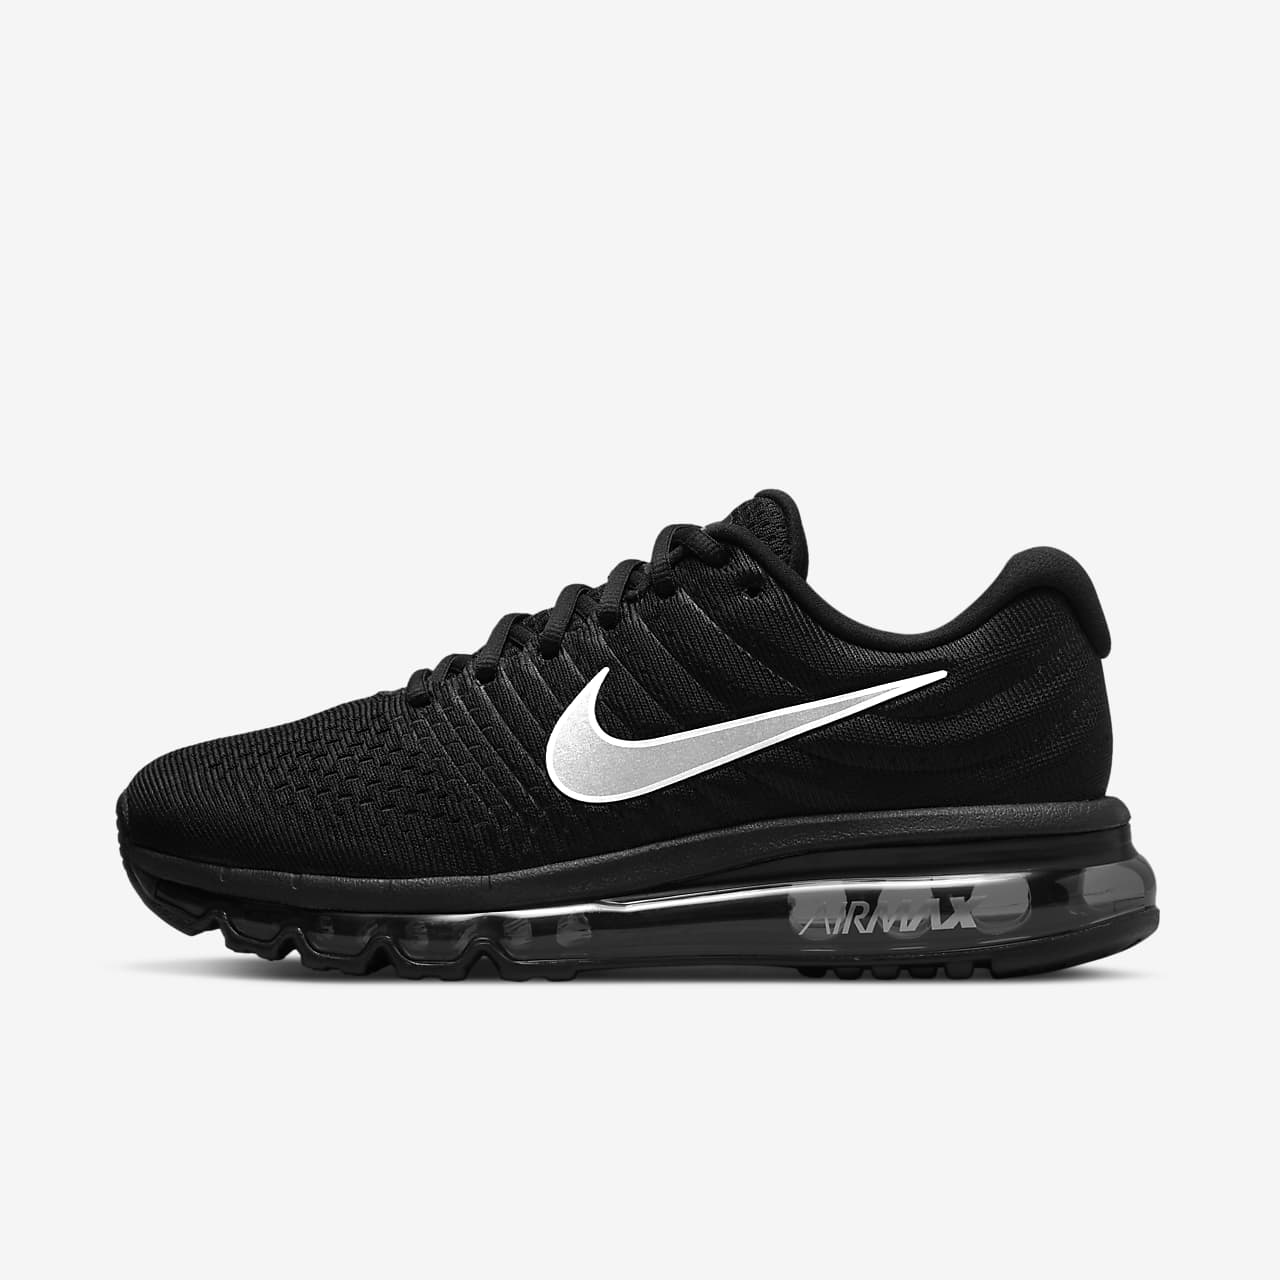 4aea16b1504 Nike Air Max 2017 Women s Shoe. Nike.com CA